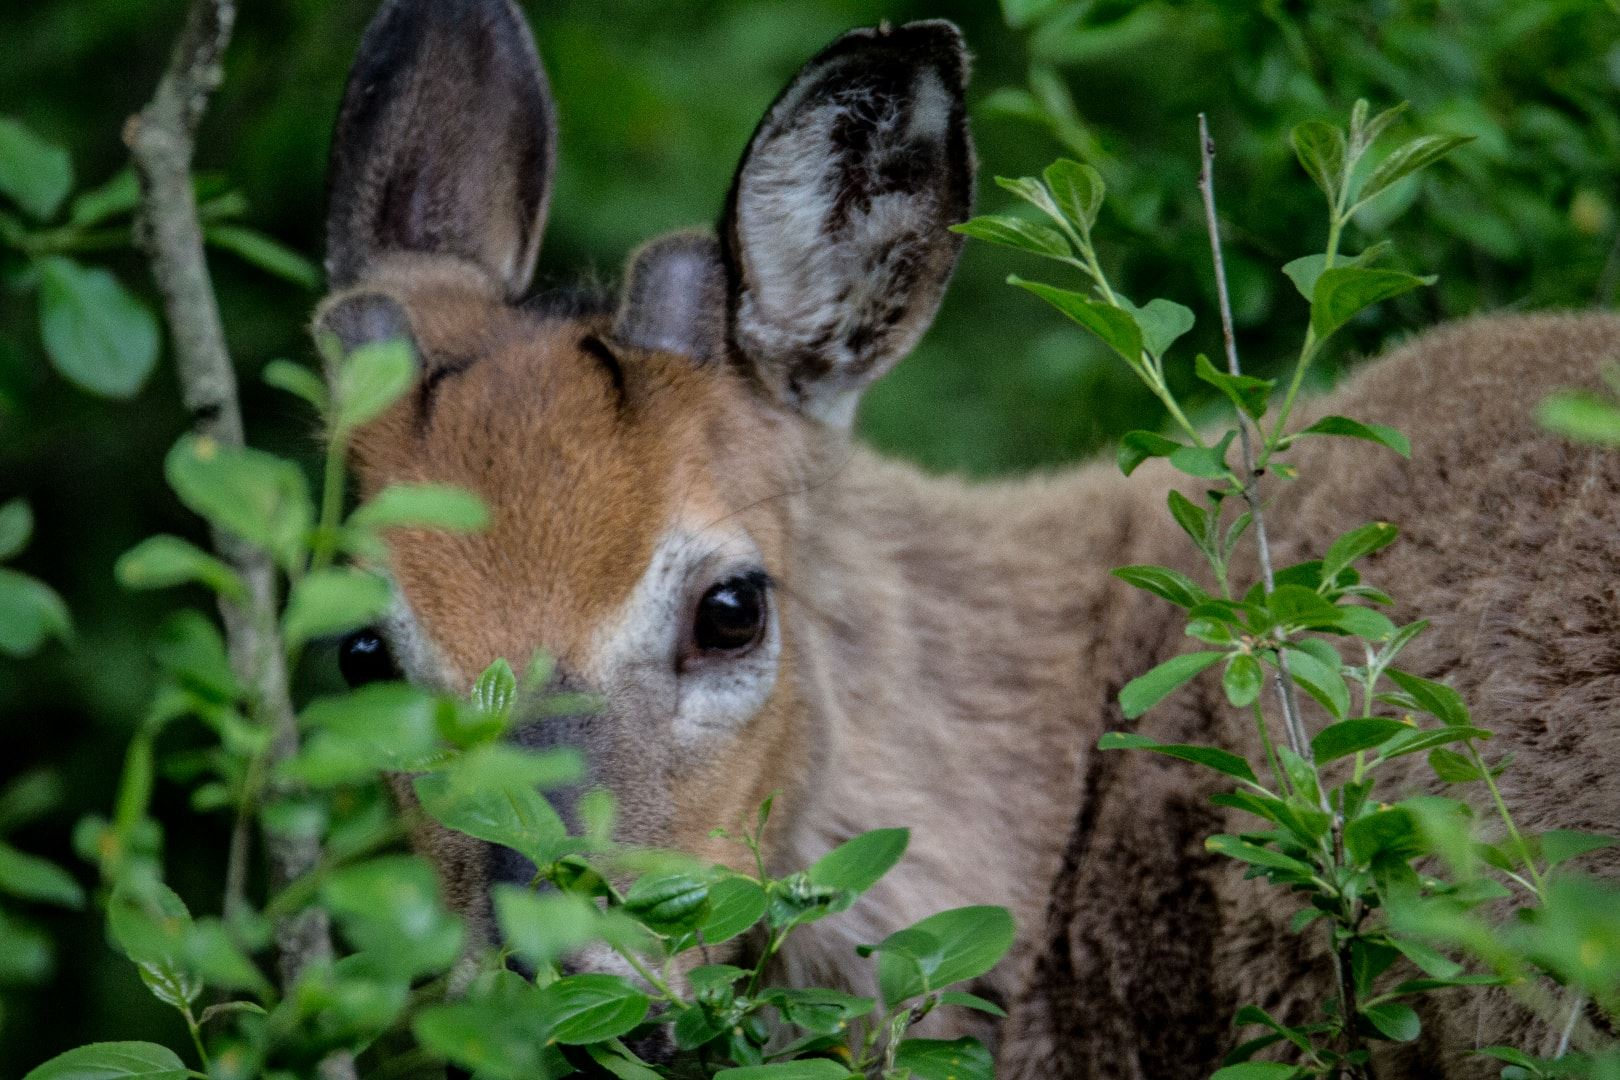 Deer Hiding in Foliage